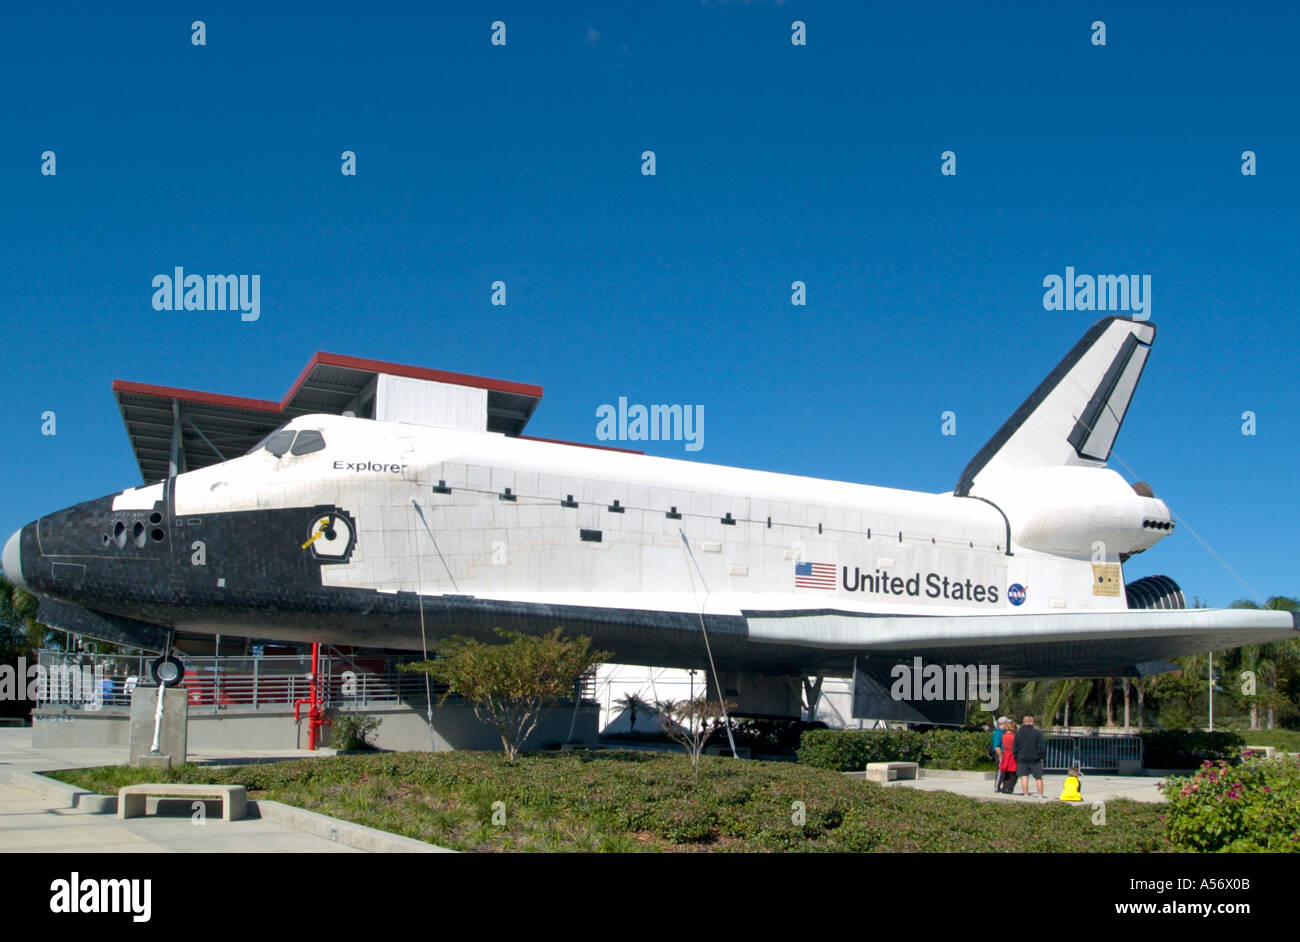 space shuttle explorer is real - photo #49